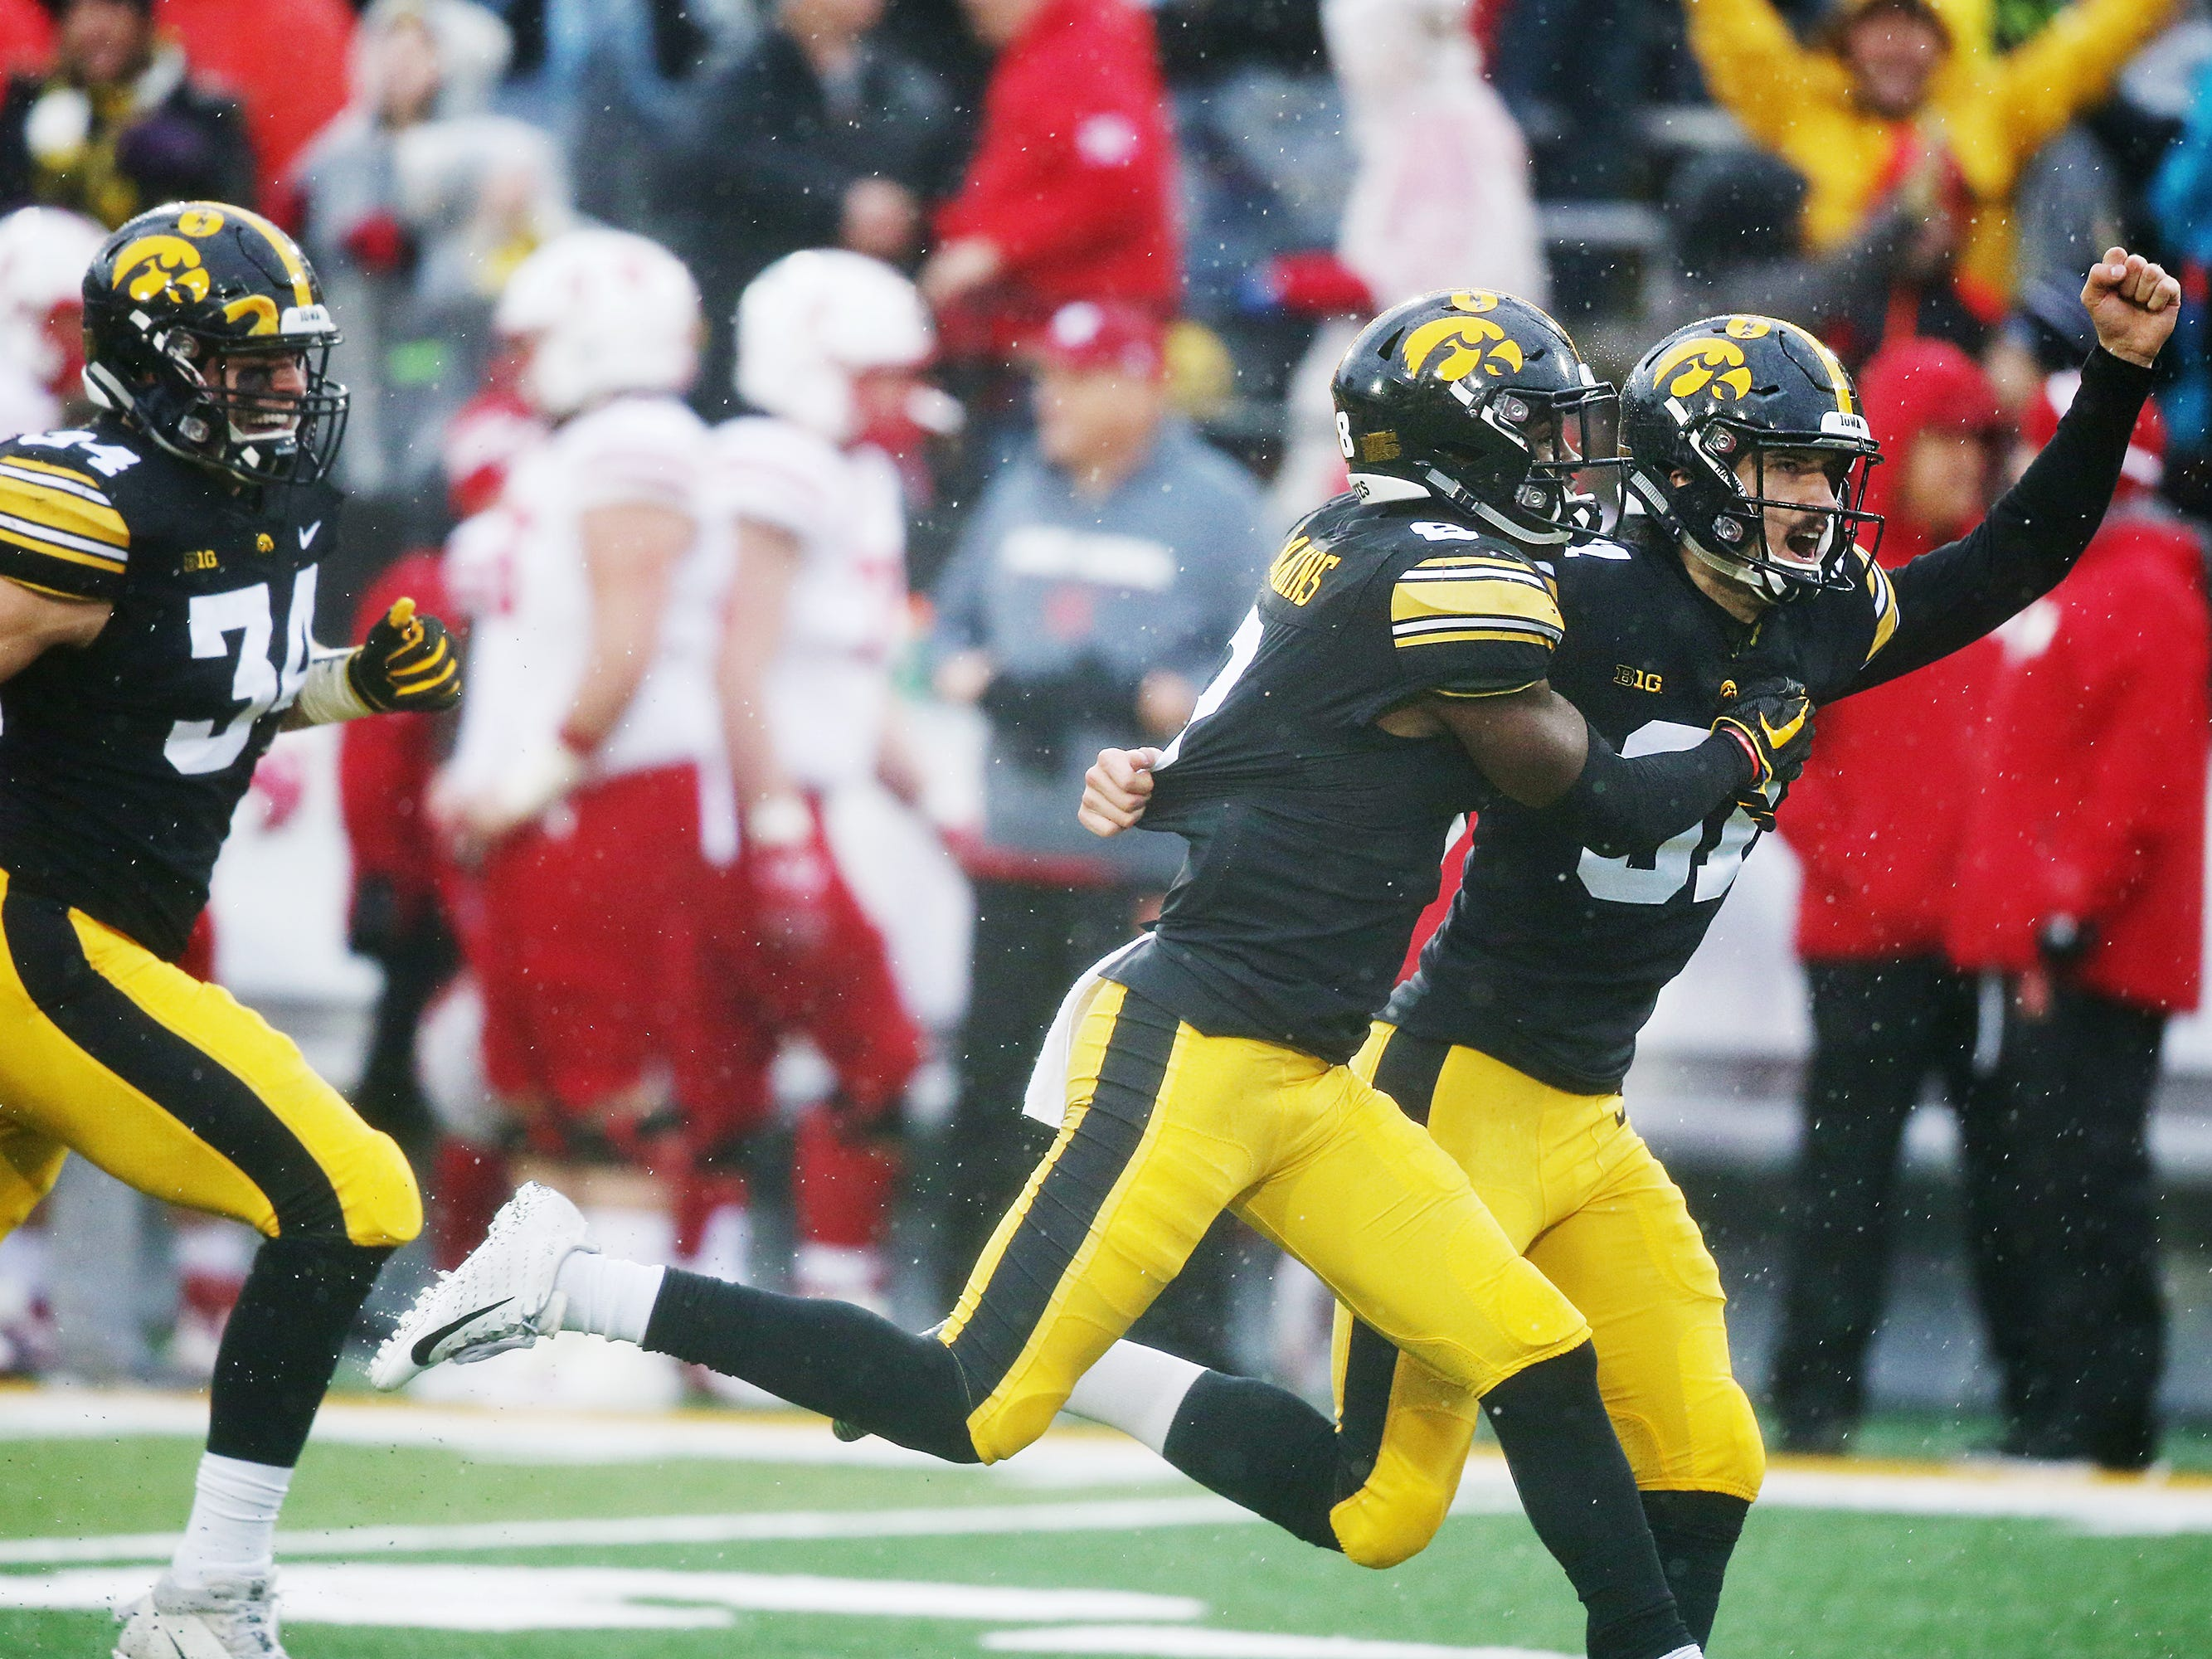 Iowa's kicker Miguel Recinos and Matt Hankins celebrate after Recinos made the game winning kick during the senior day match-up between the Iowa Hawkeyes and the Nebraska Cornhuskers on Friday, Nov. 23, 2018, at Kinnick Stadium, in Iowa City.